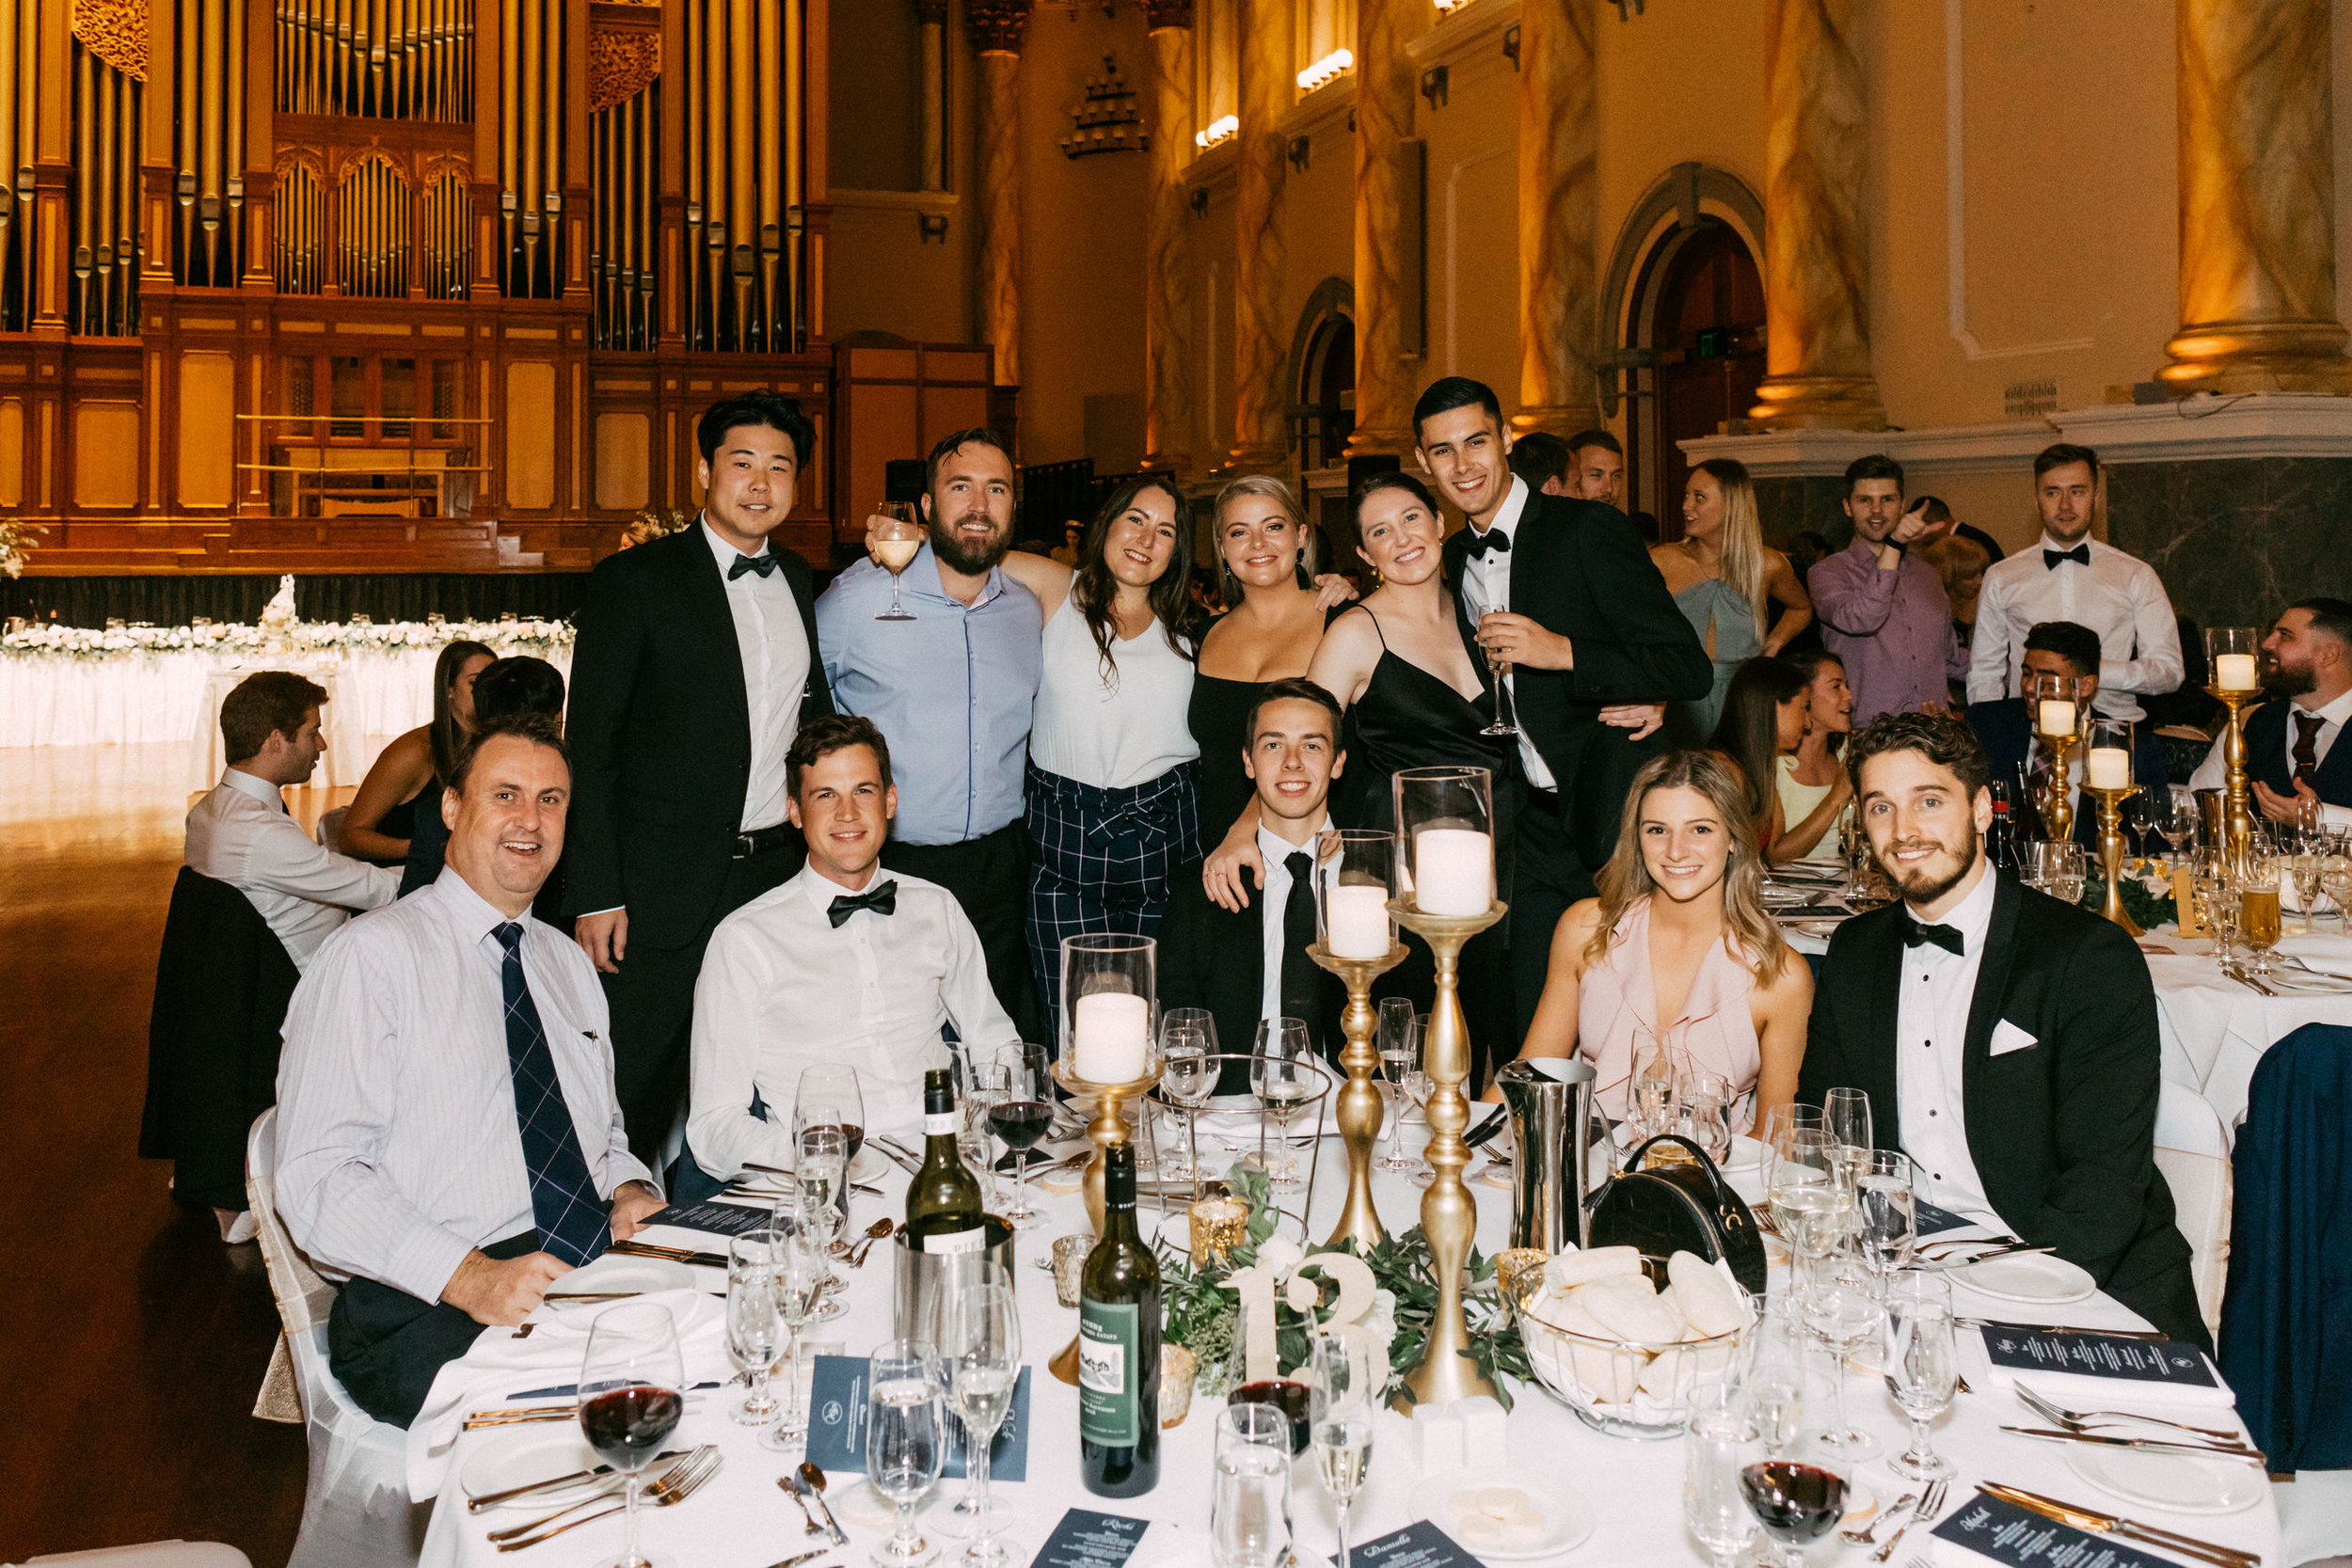 Adelaide Wedding 2019 147.jpg